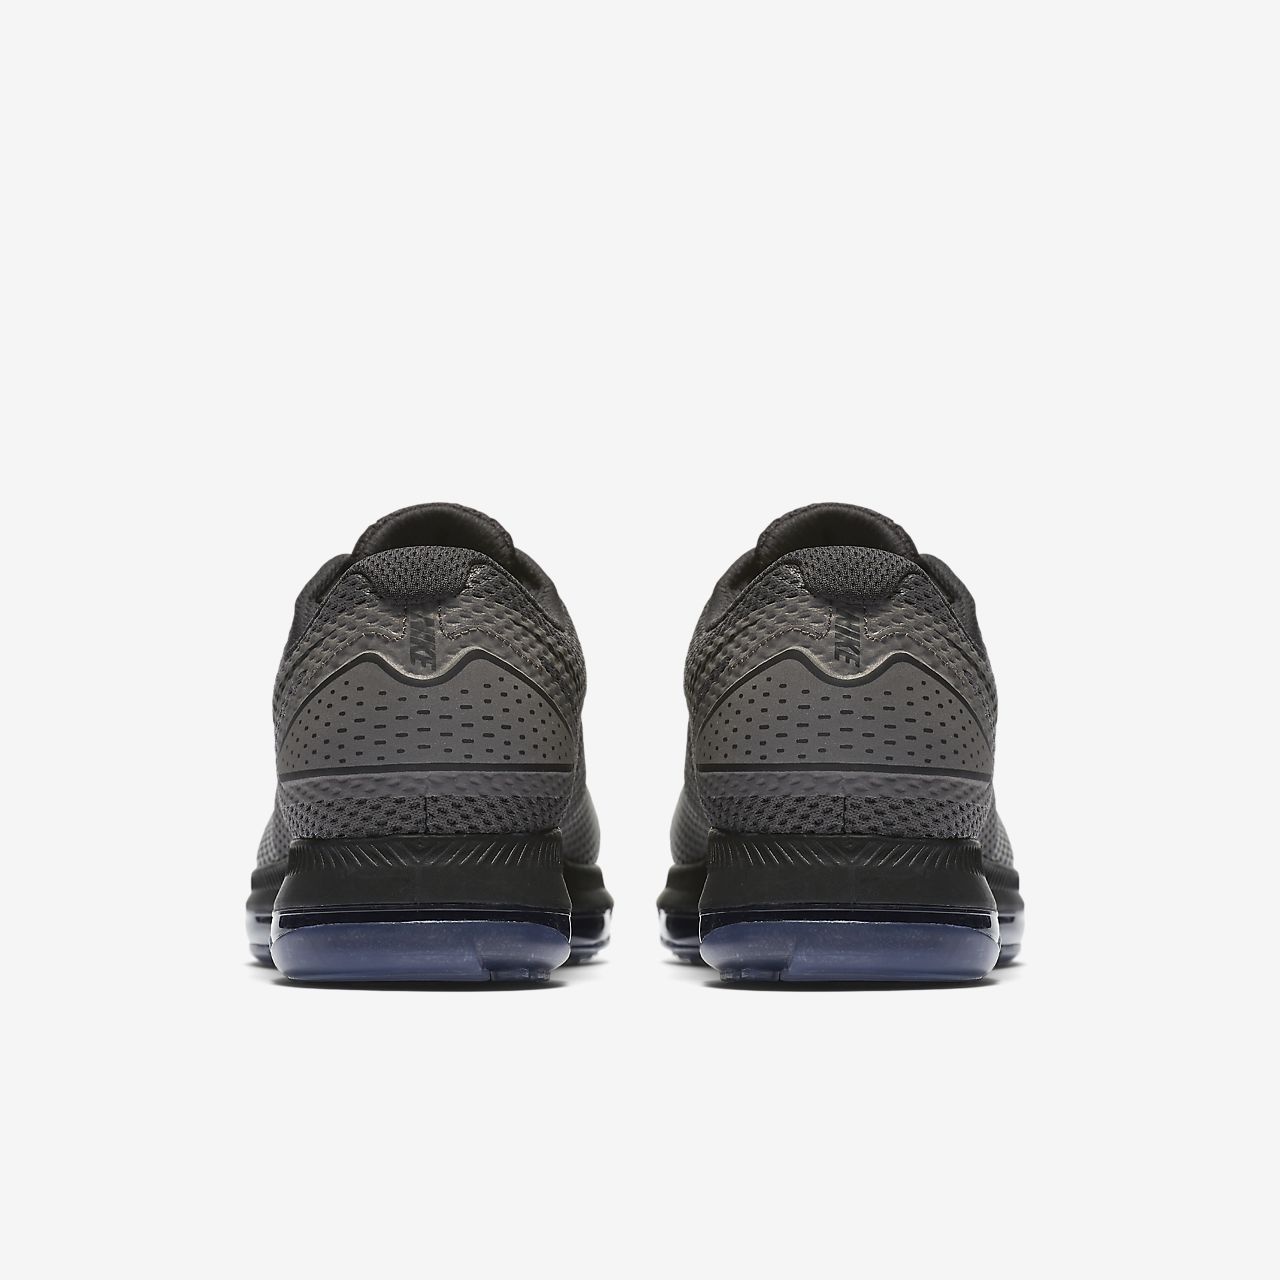 the best attitude 80e53 0685a ... Chaussure de running Nike Zoom All Out Low 2 pour Femme